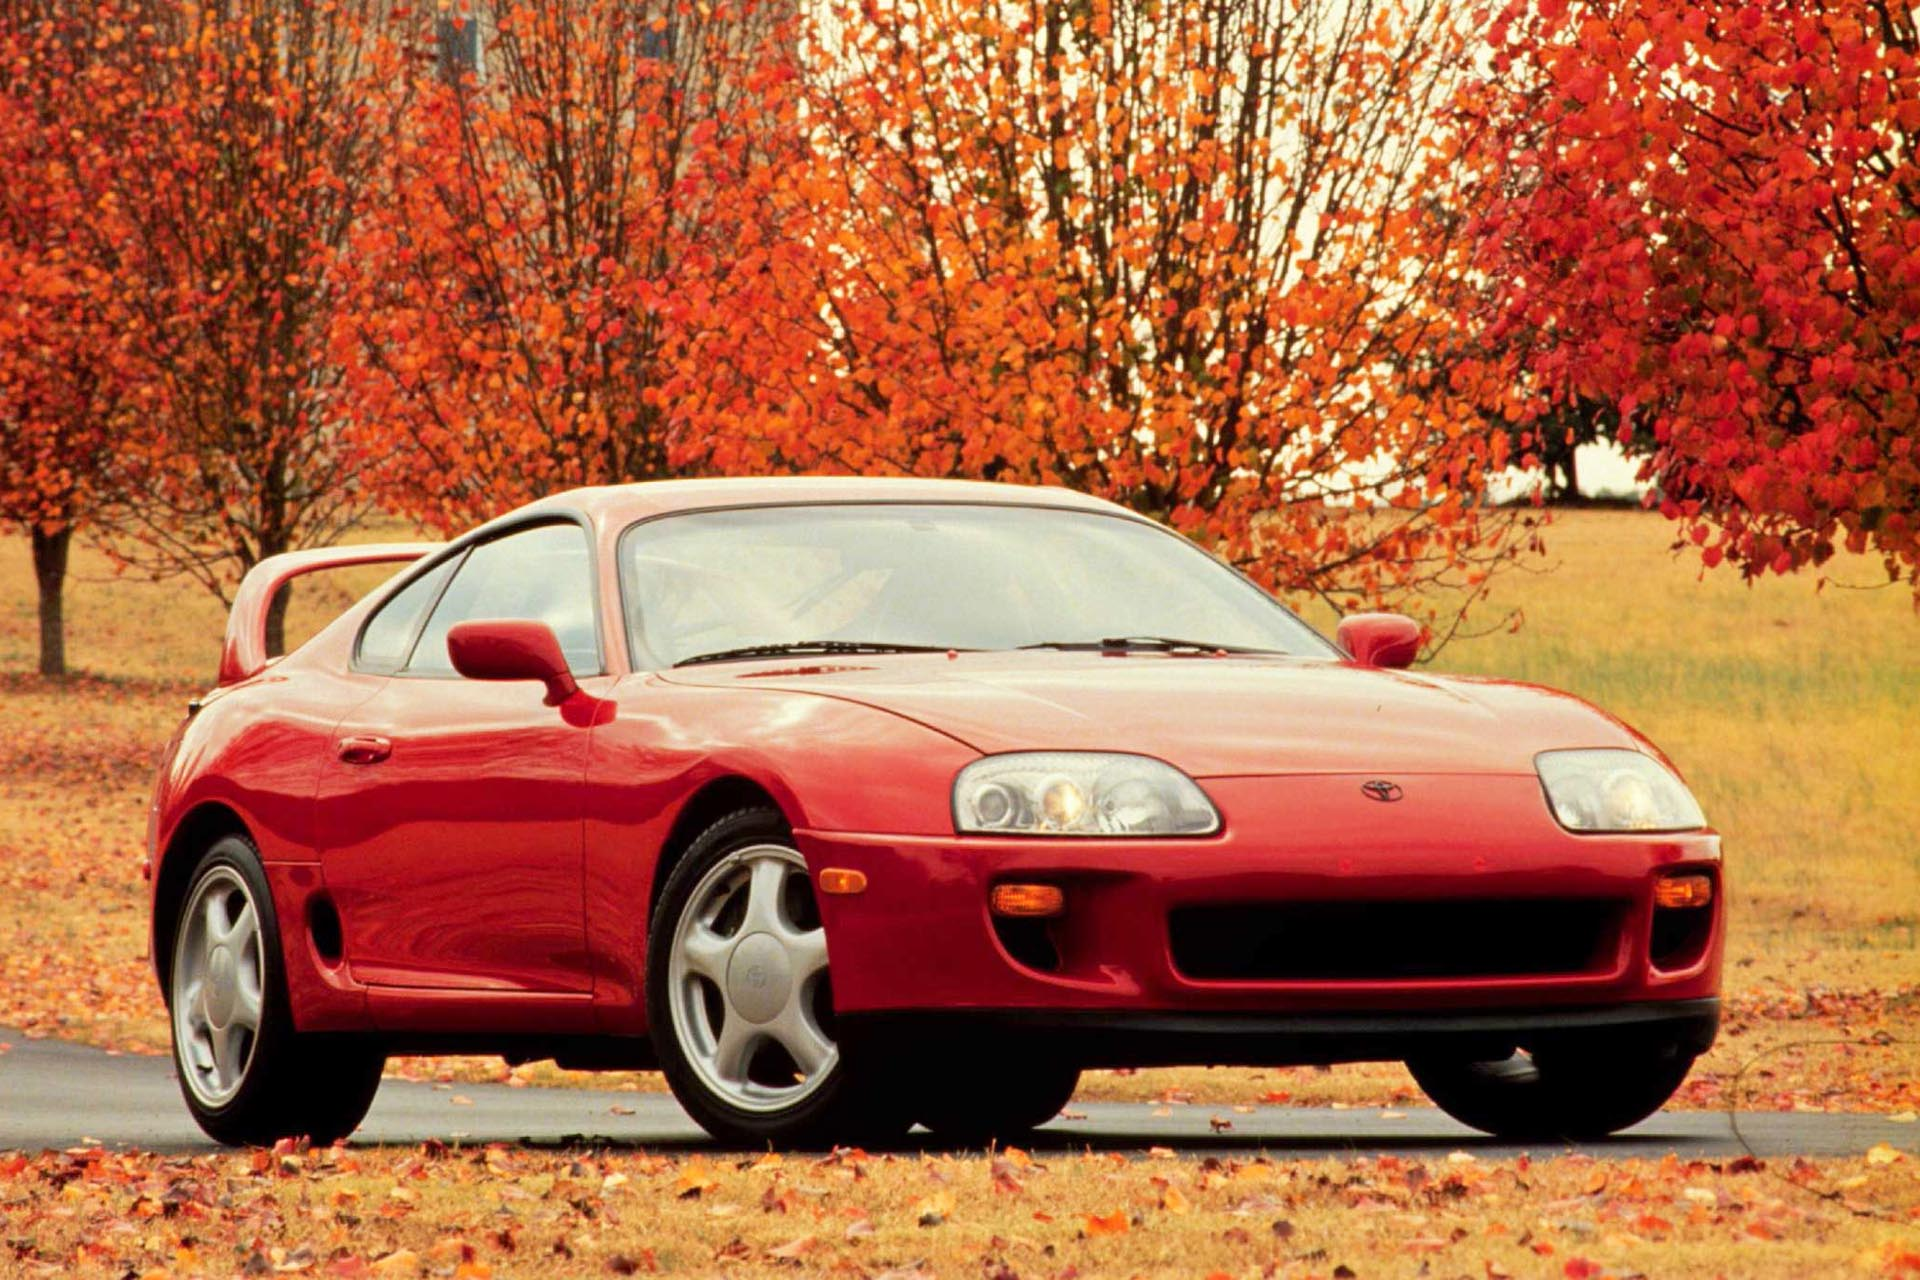 If one of these things floats up for sale, unmodified, buy it yesterday and stick it in the vault. Bound to skyrocket in value, the twin-turbo Supra was king of the hill in the wild days of Japanese muscle, and this limited-edition version will be a collector's favourite.